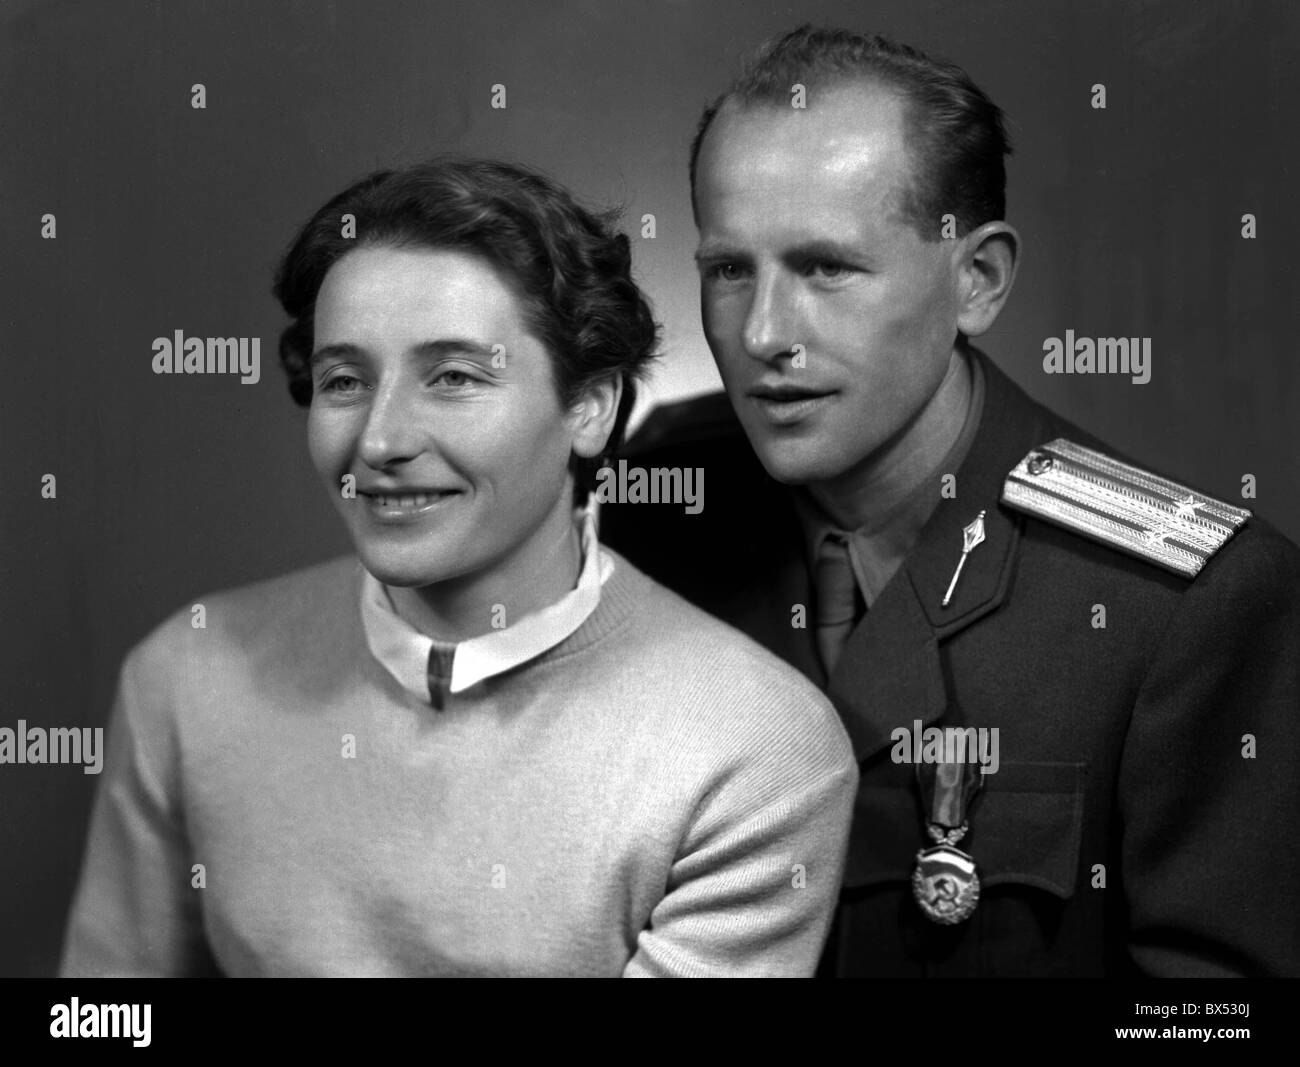 quadruple Olympic gold medal winner in running Emil Zatopek with wife Dana a gold medalist in Olympics in javelin - Stock Image